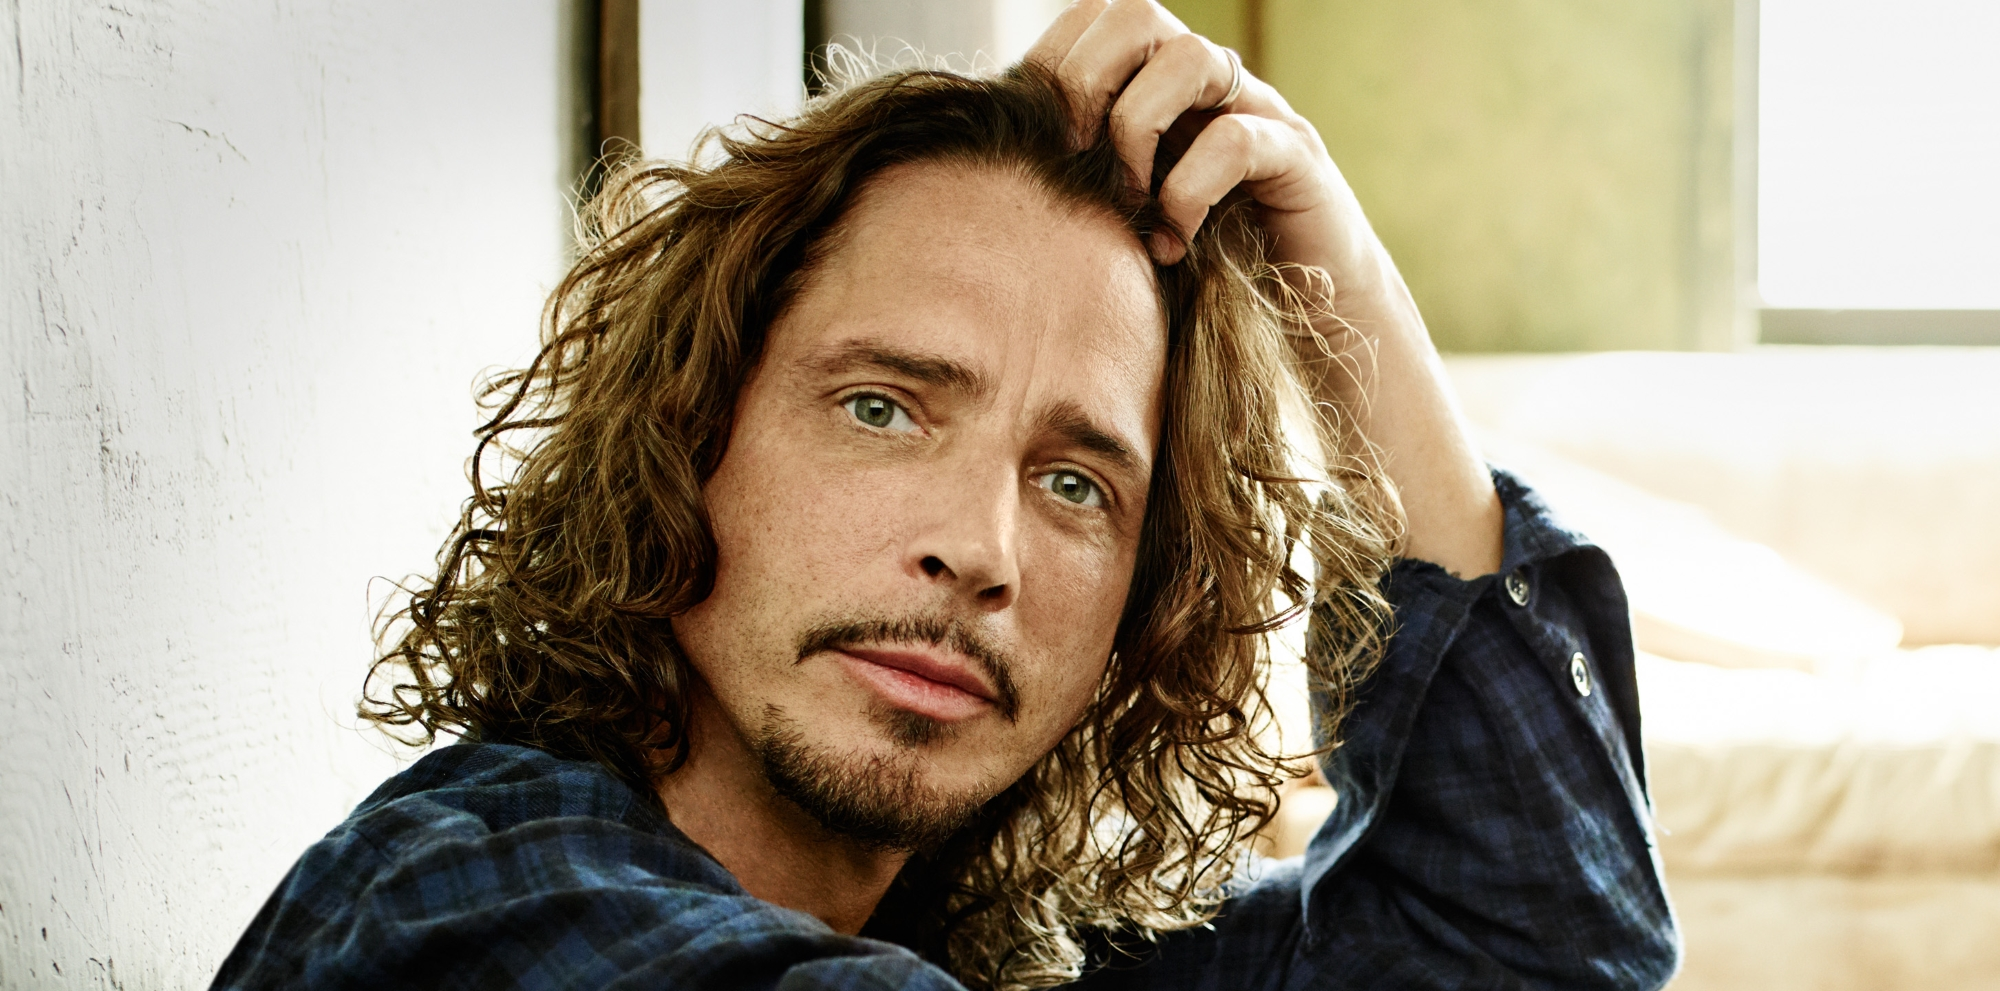 Breaking News: Chris Cornell Dead at 52